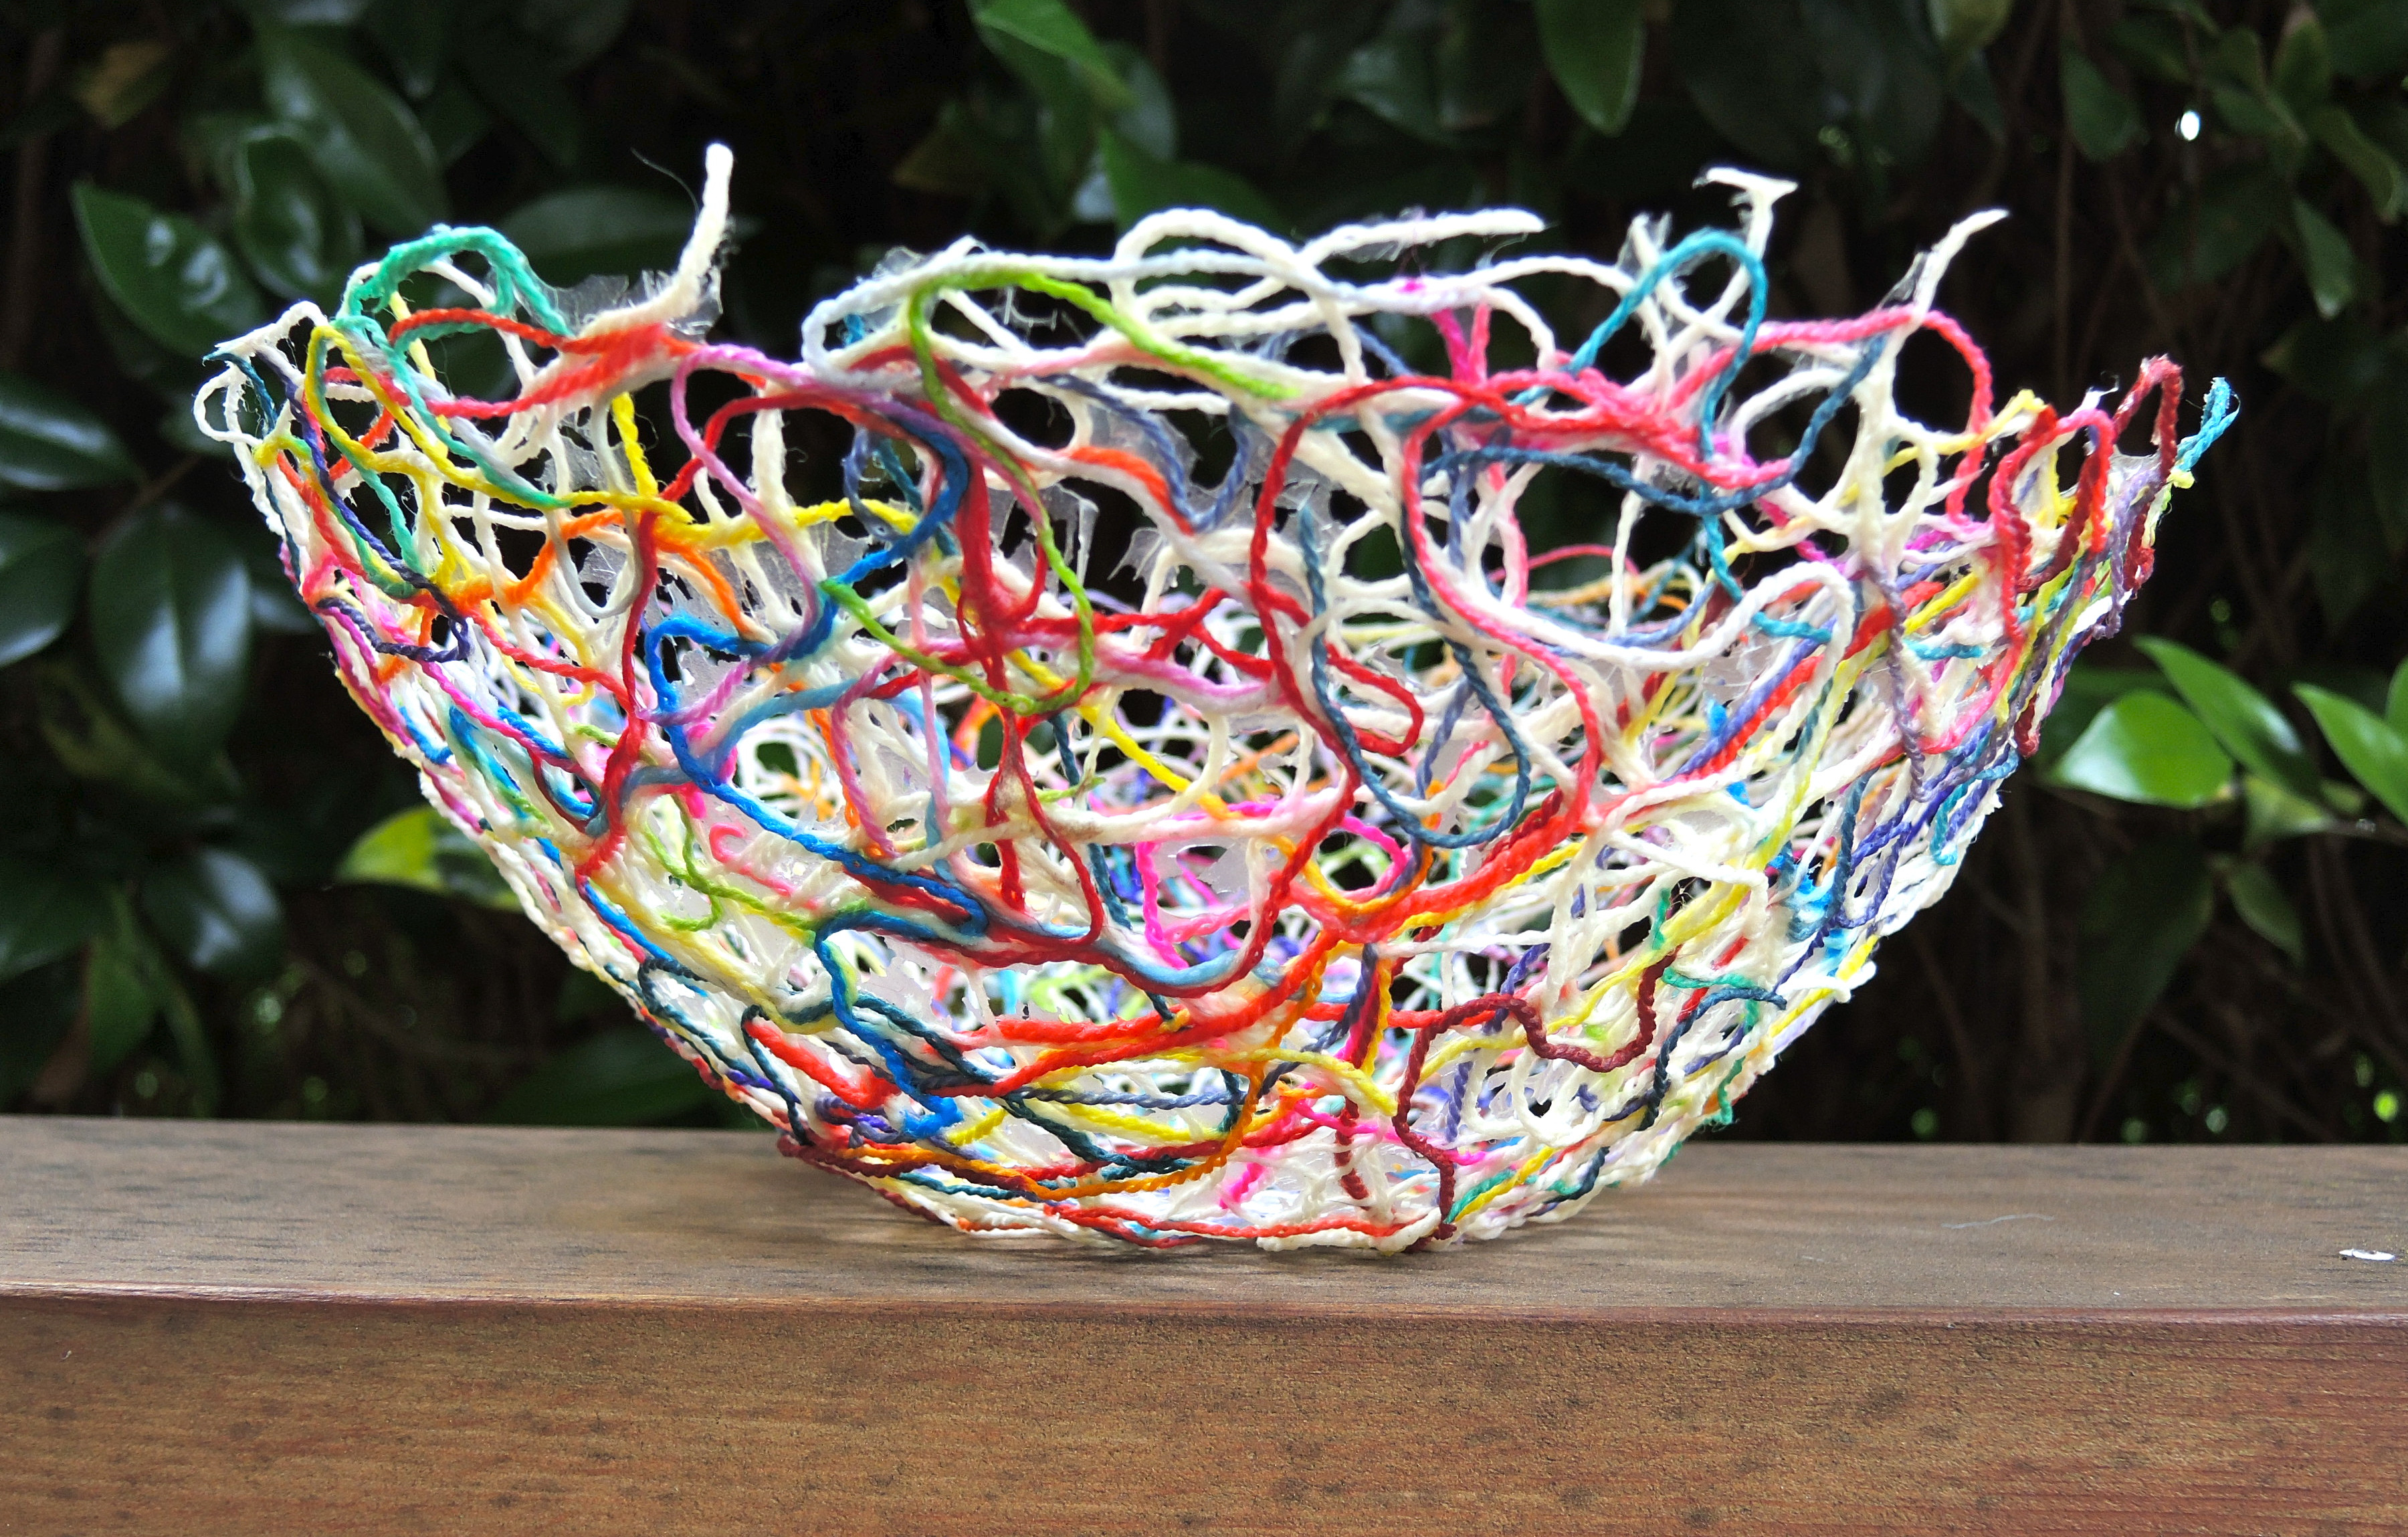 Best ideas about Yarn Bowl DIY . Save or Pin How To Make DIY Balloon Bowls For Easter Decorations Now.